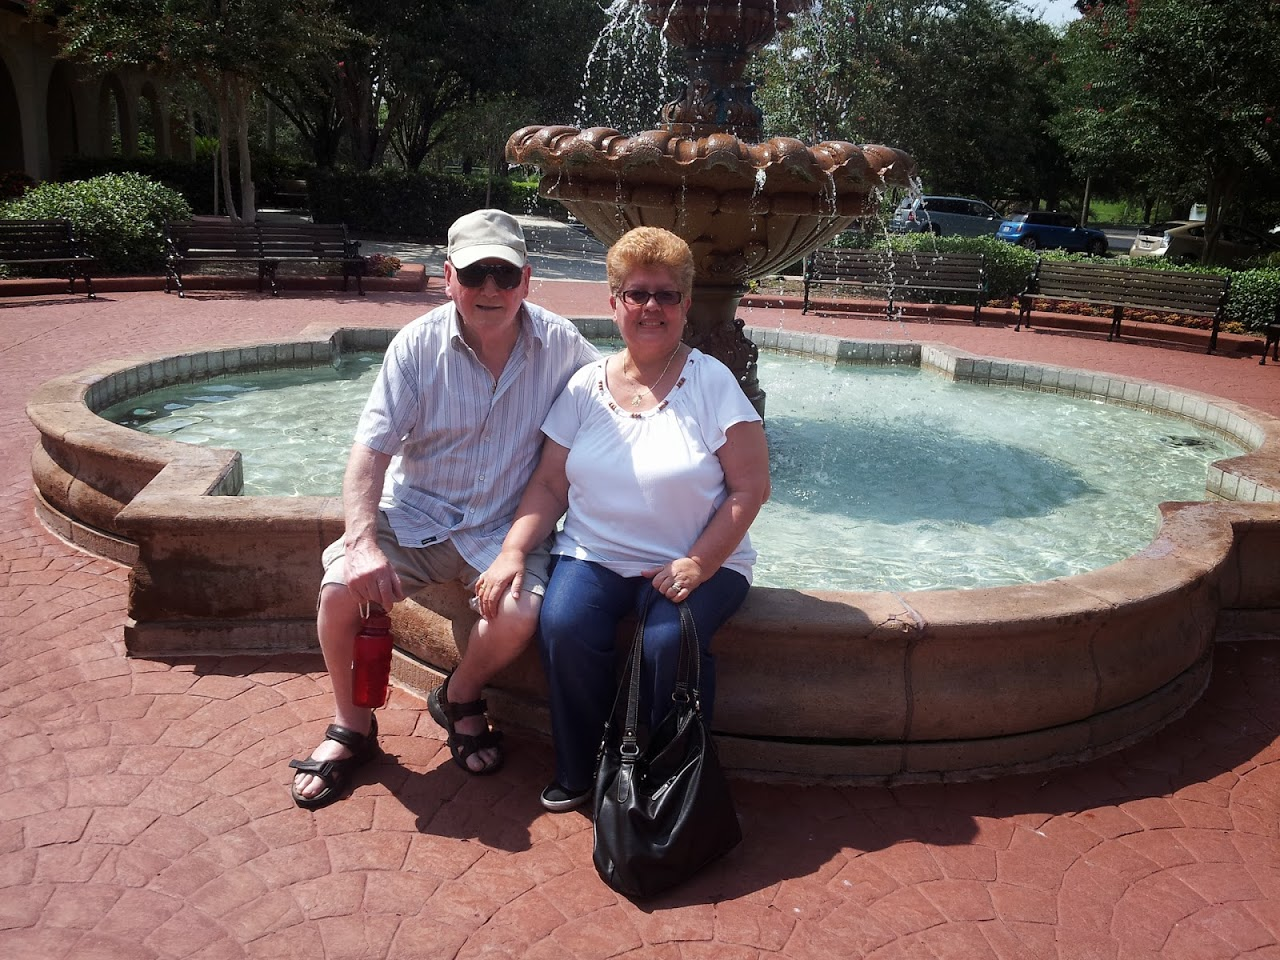 Visiting our cousin staying at The Villages when she came on holidays.  We had a lovely day.